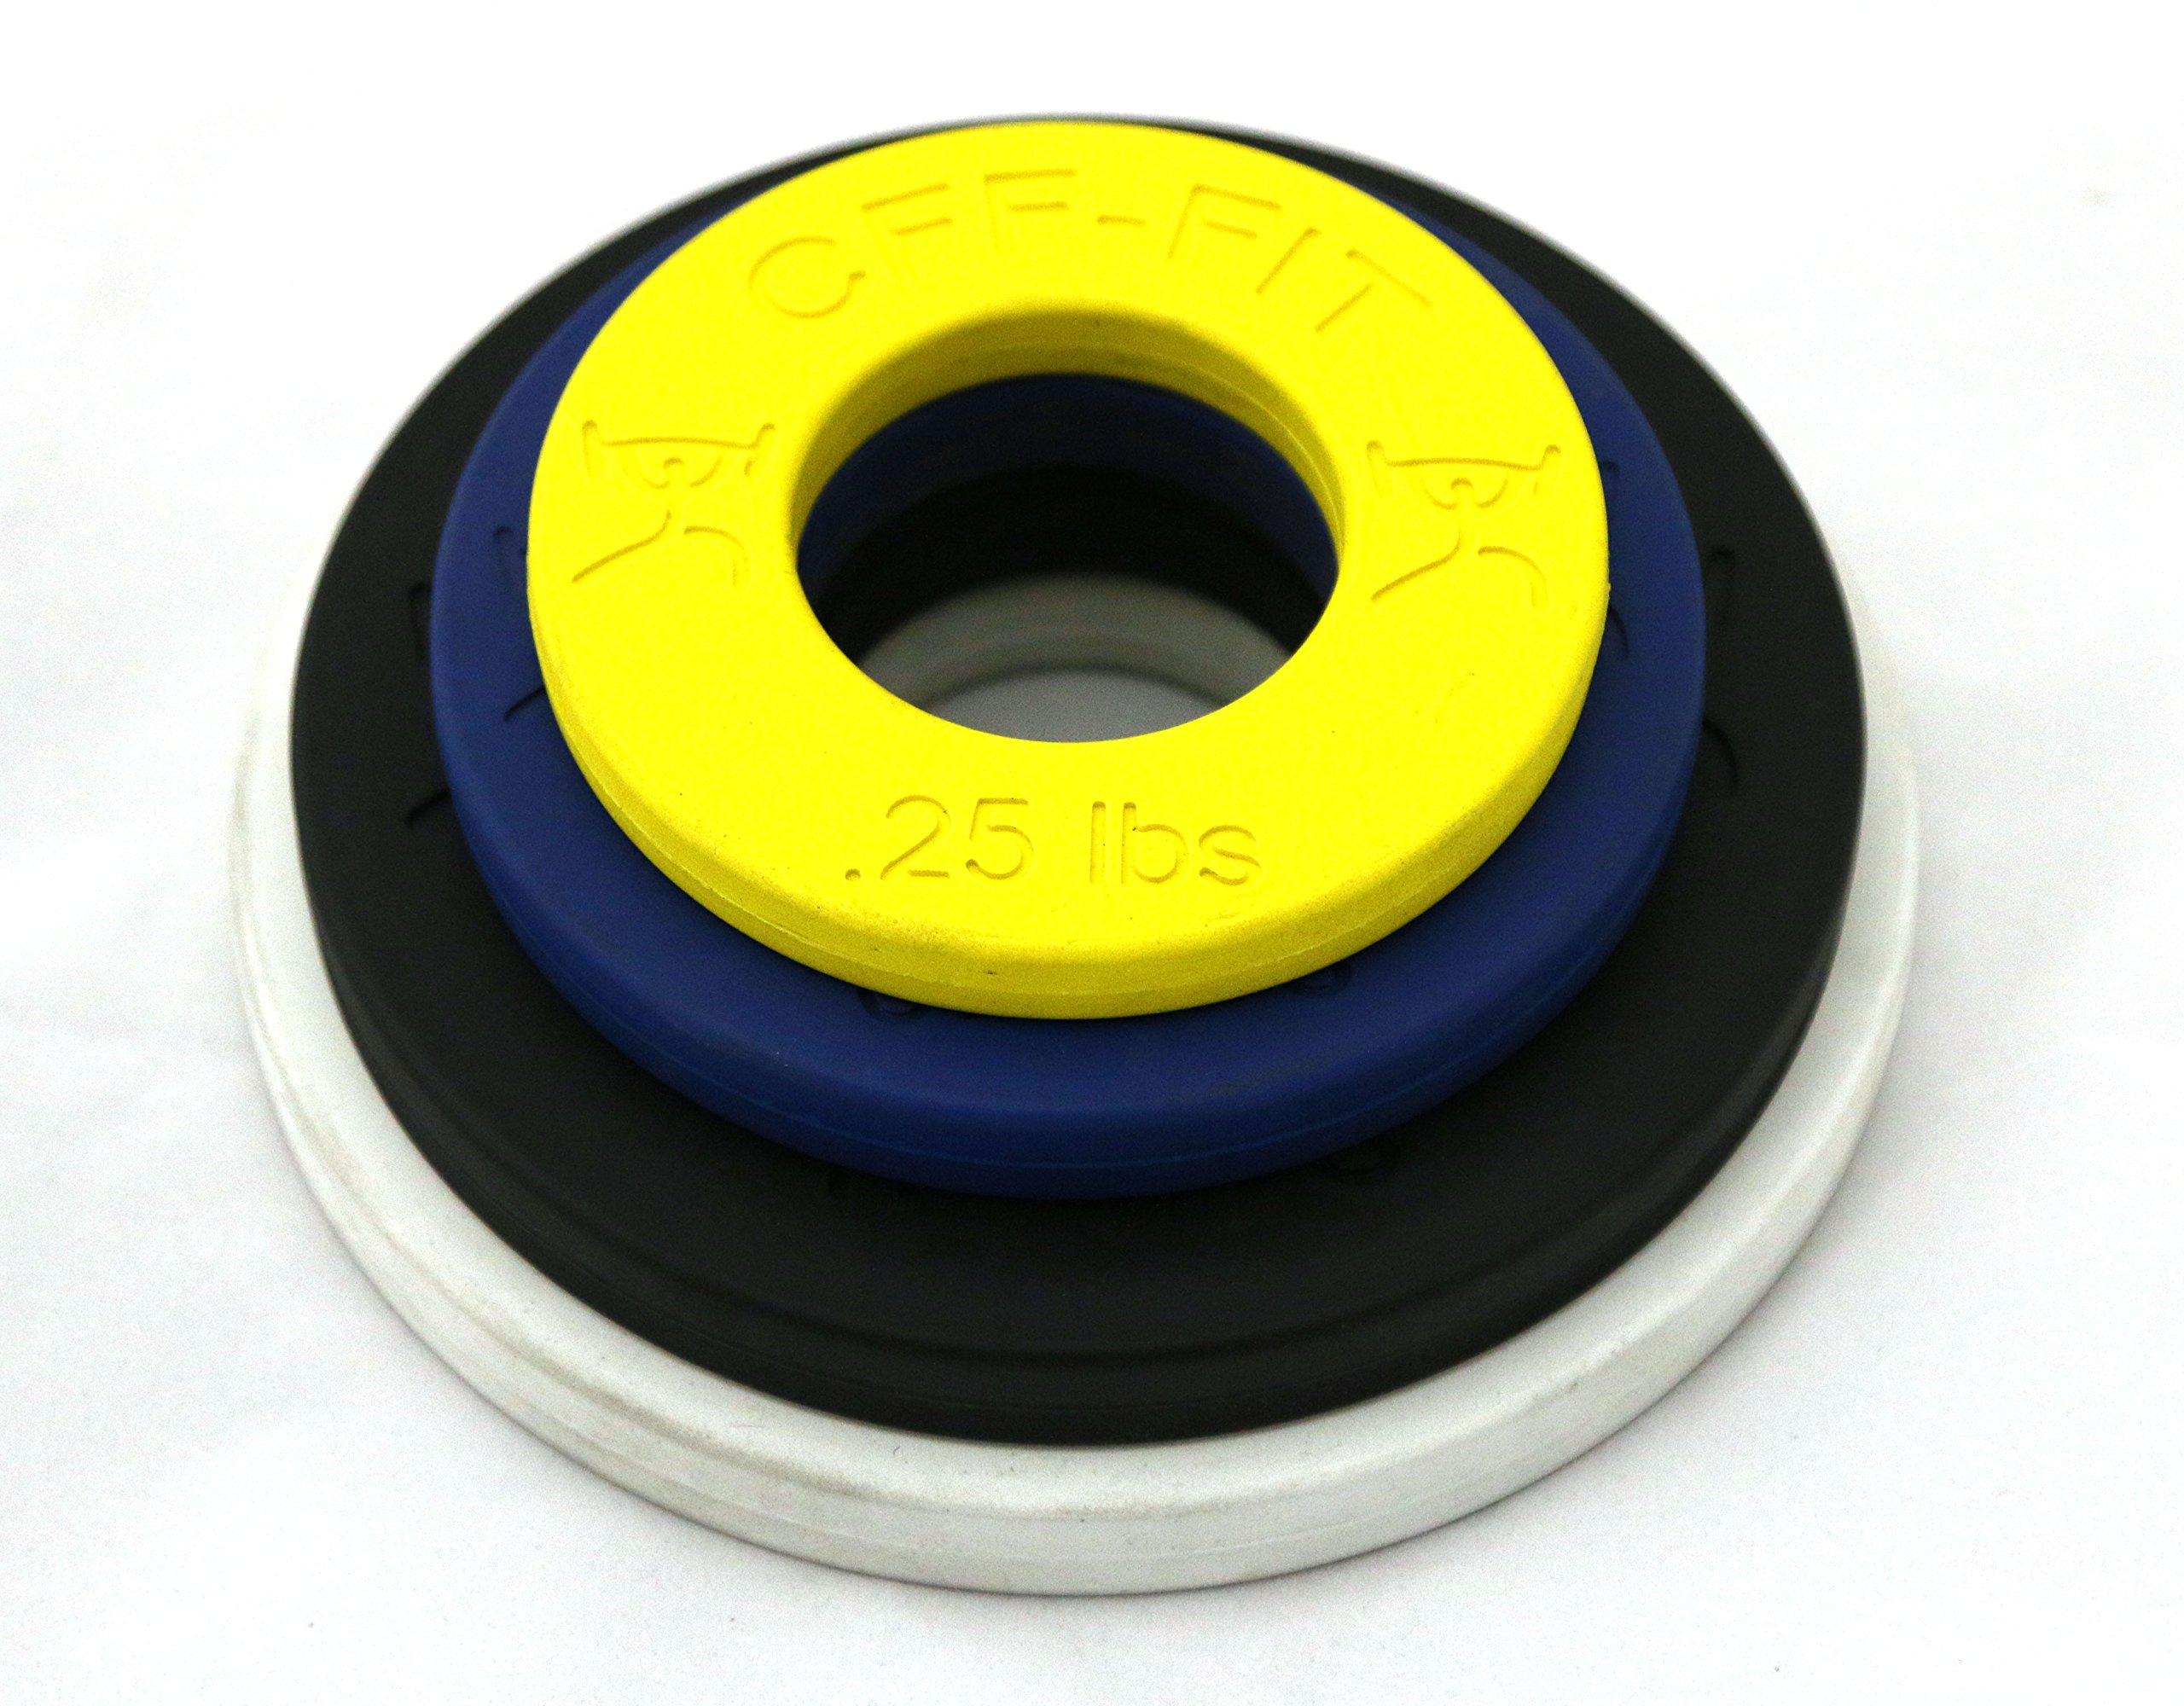 CFF Competition Rubber Fractional Weight Plates - .25 lb.5 lb, 1 lb, 1.25 lb. Pairs - 6 Lb Set